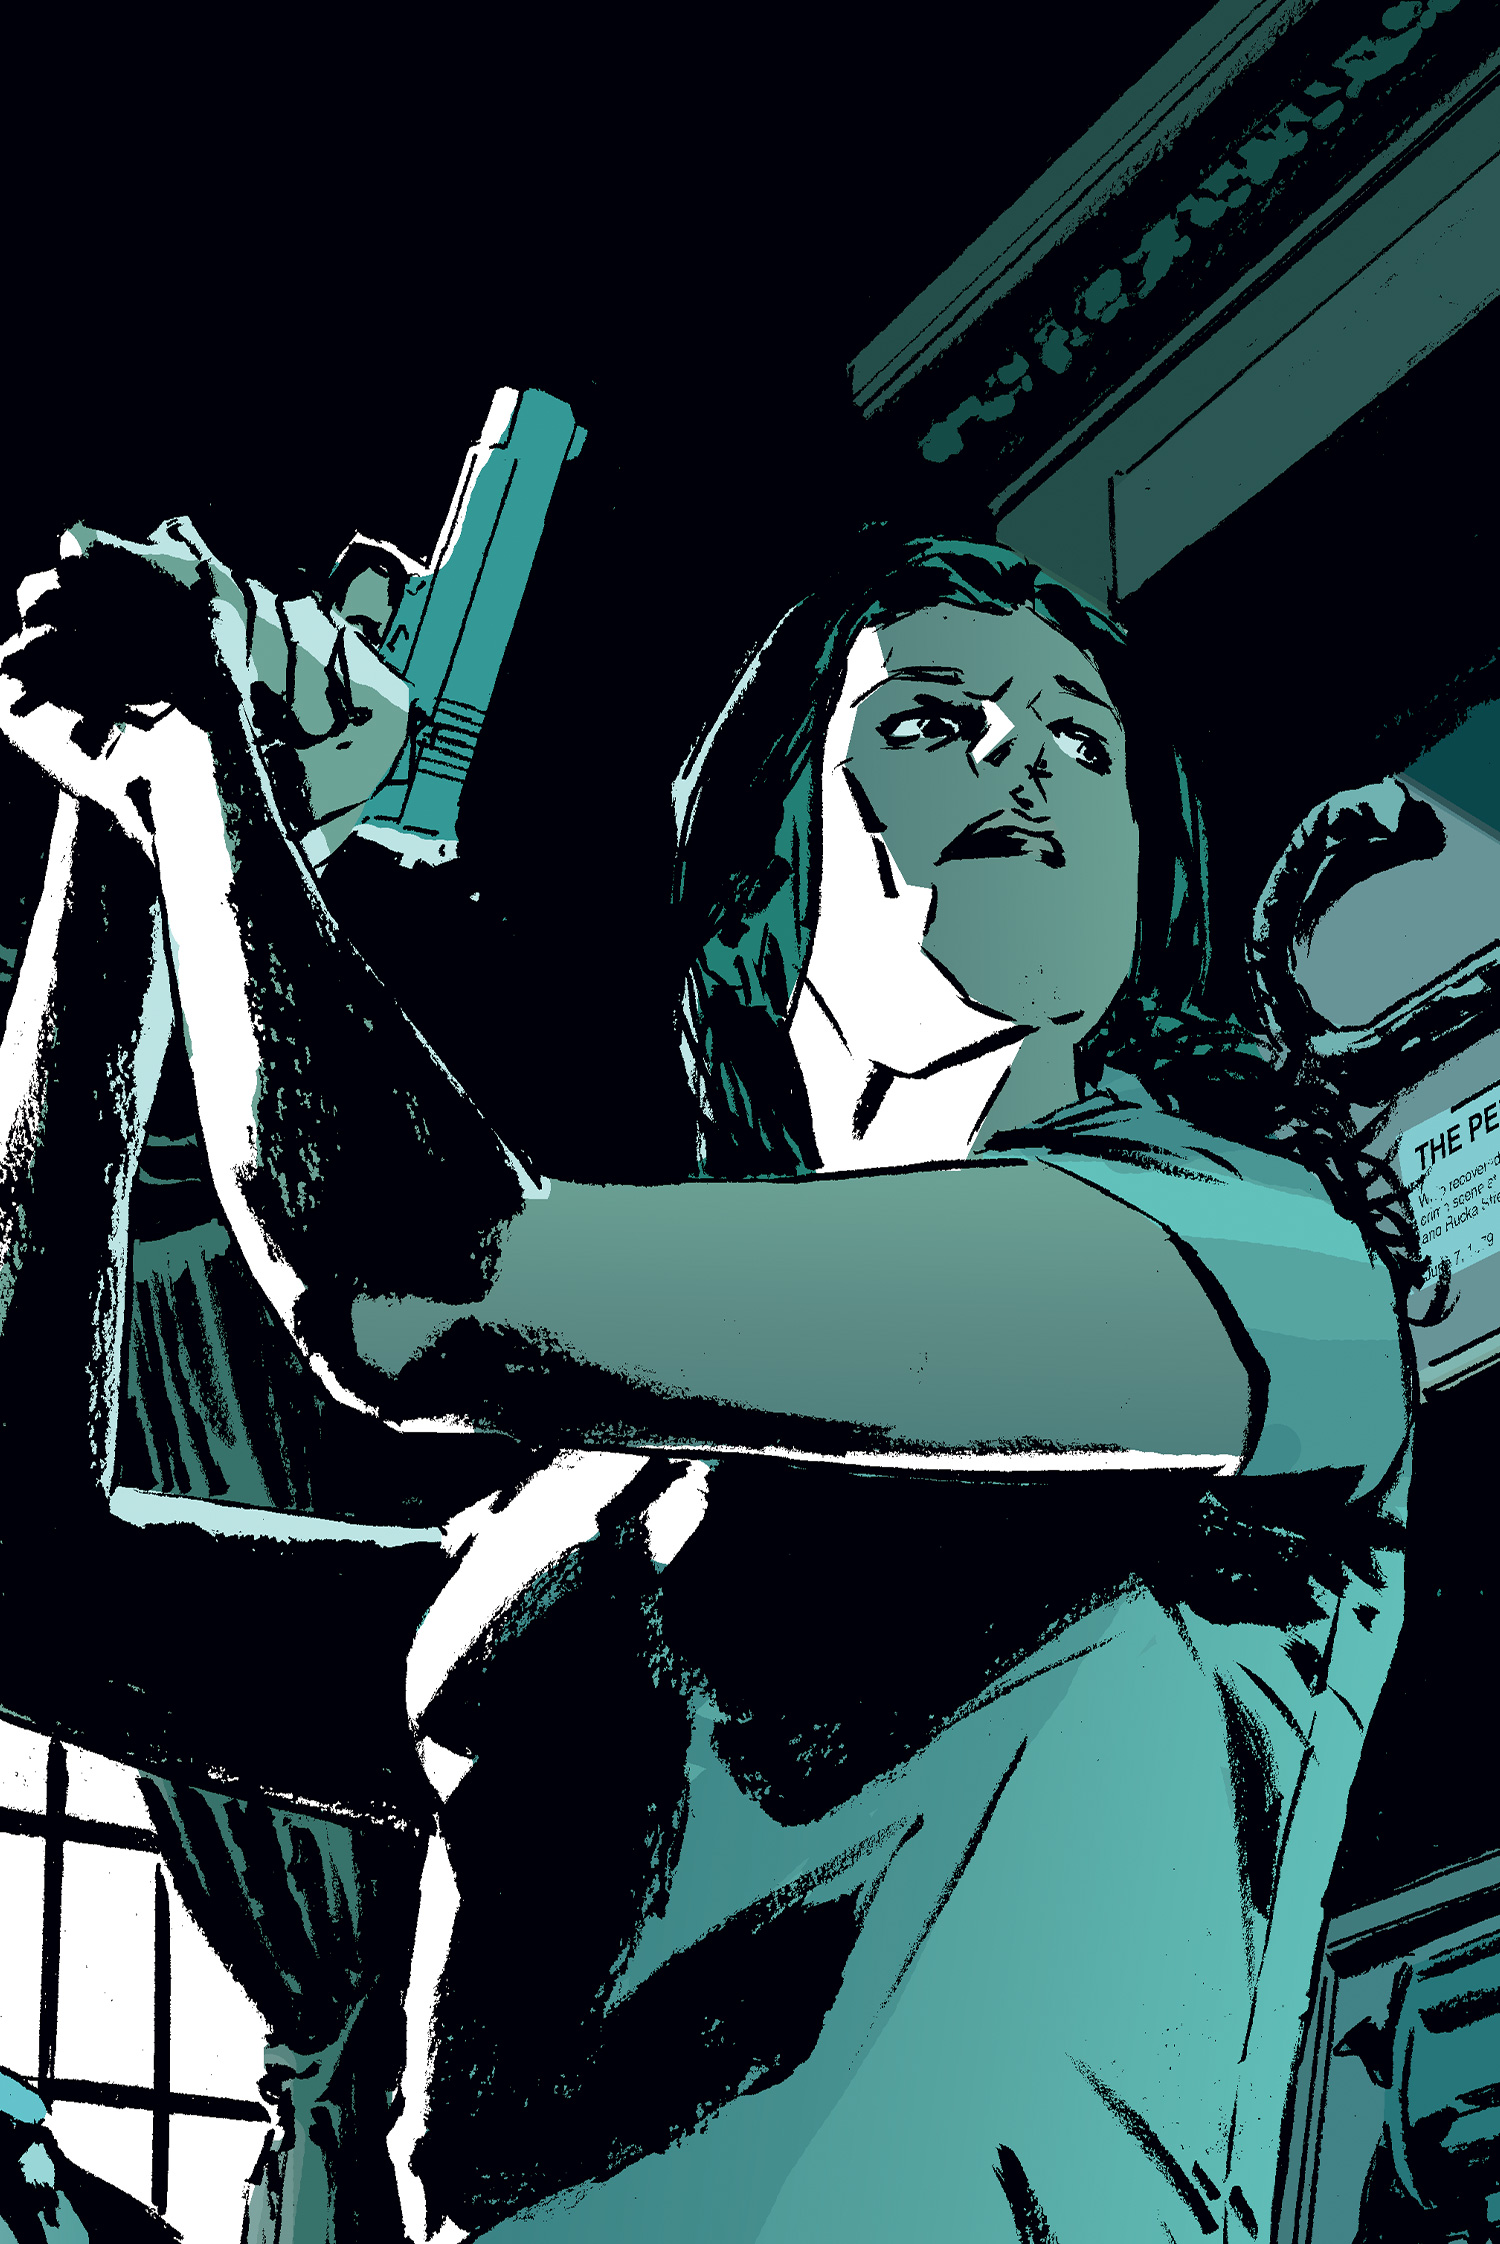 Renee Montoya with her gun drawn in a classic panel from Gotham Knights. Montoya is a lesbian Latina superhero who stars in the world of DC Comics.